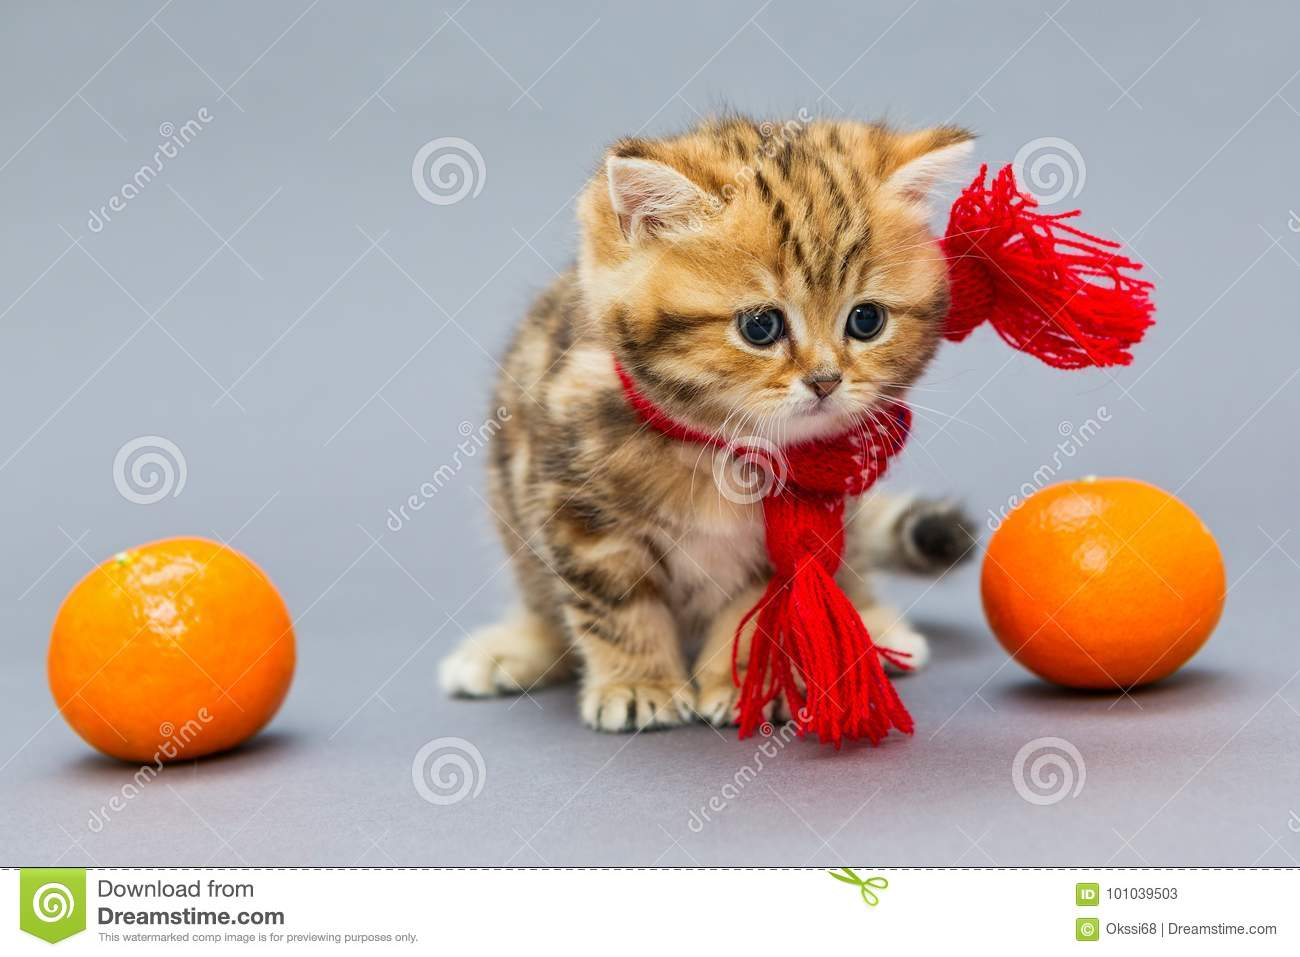 Little Kitten British Marble In A Red Scarf And Tangerine